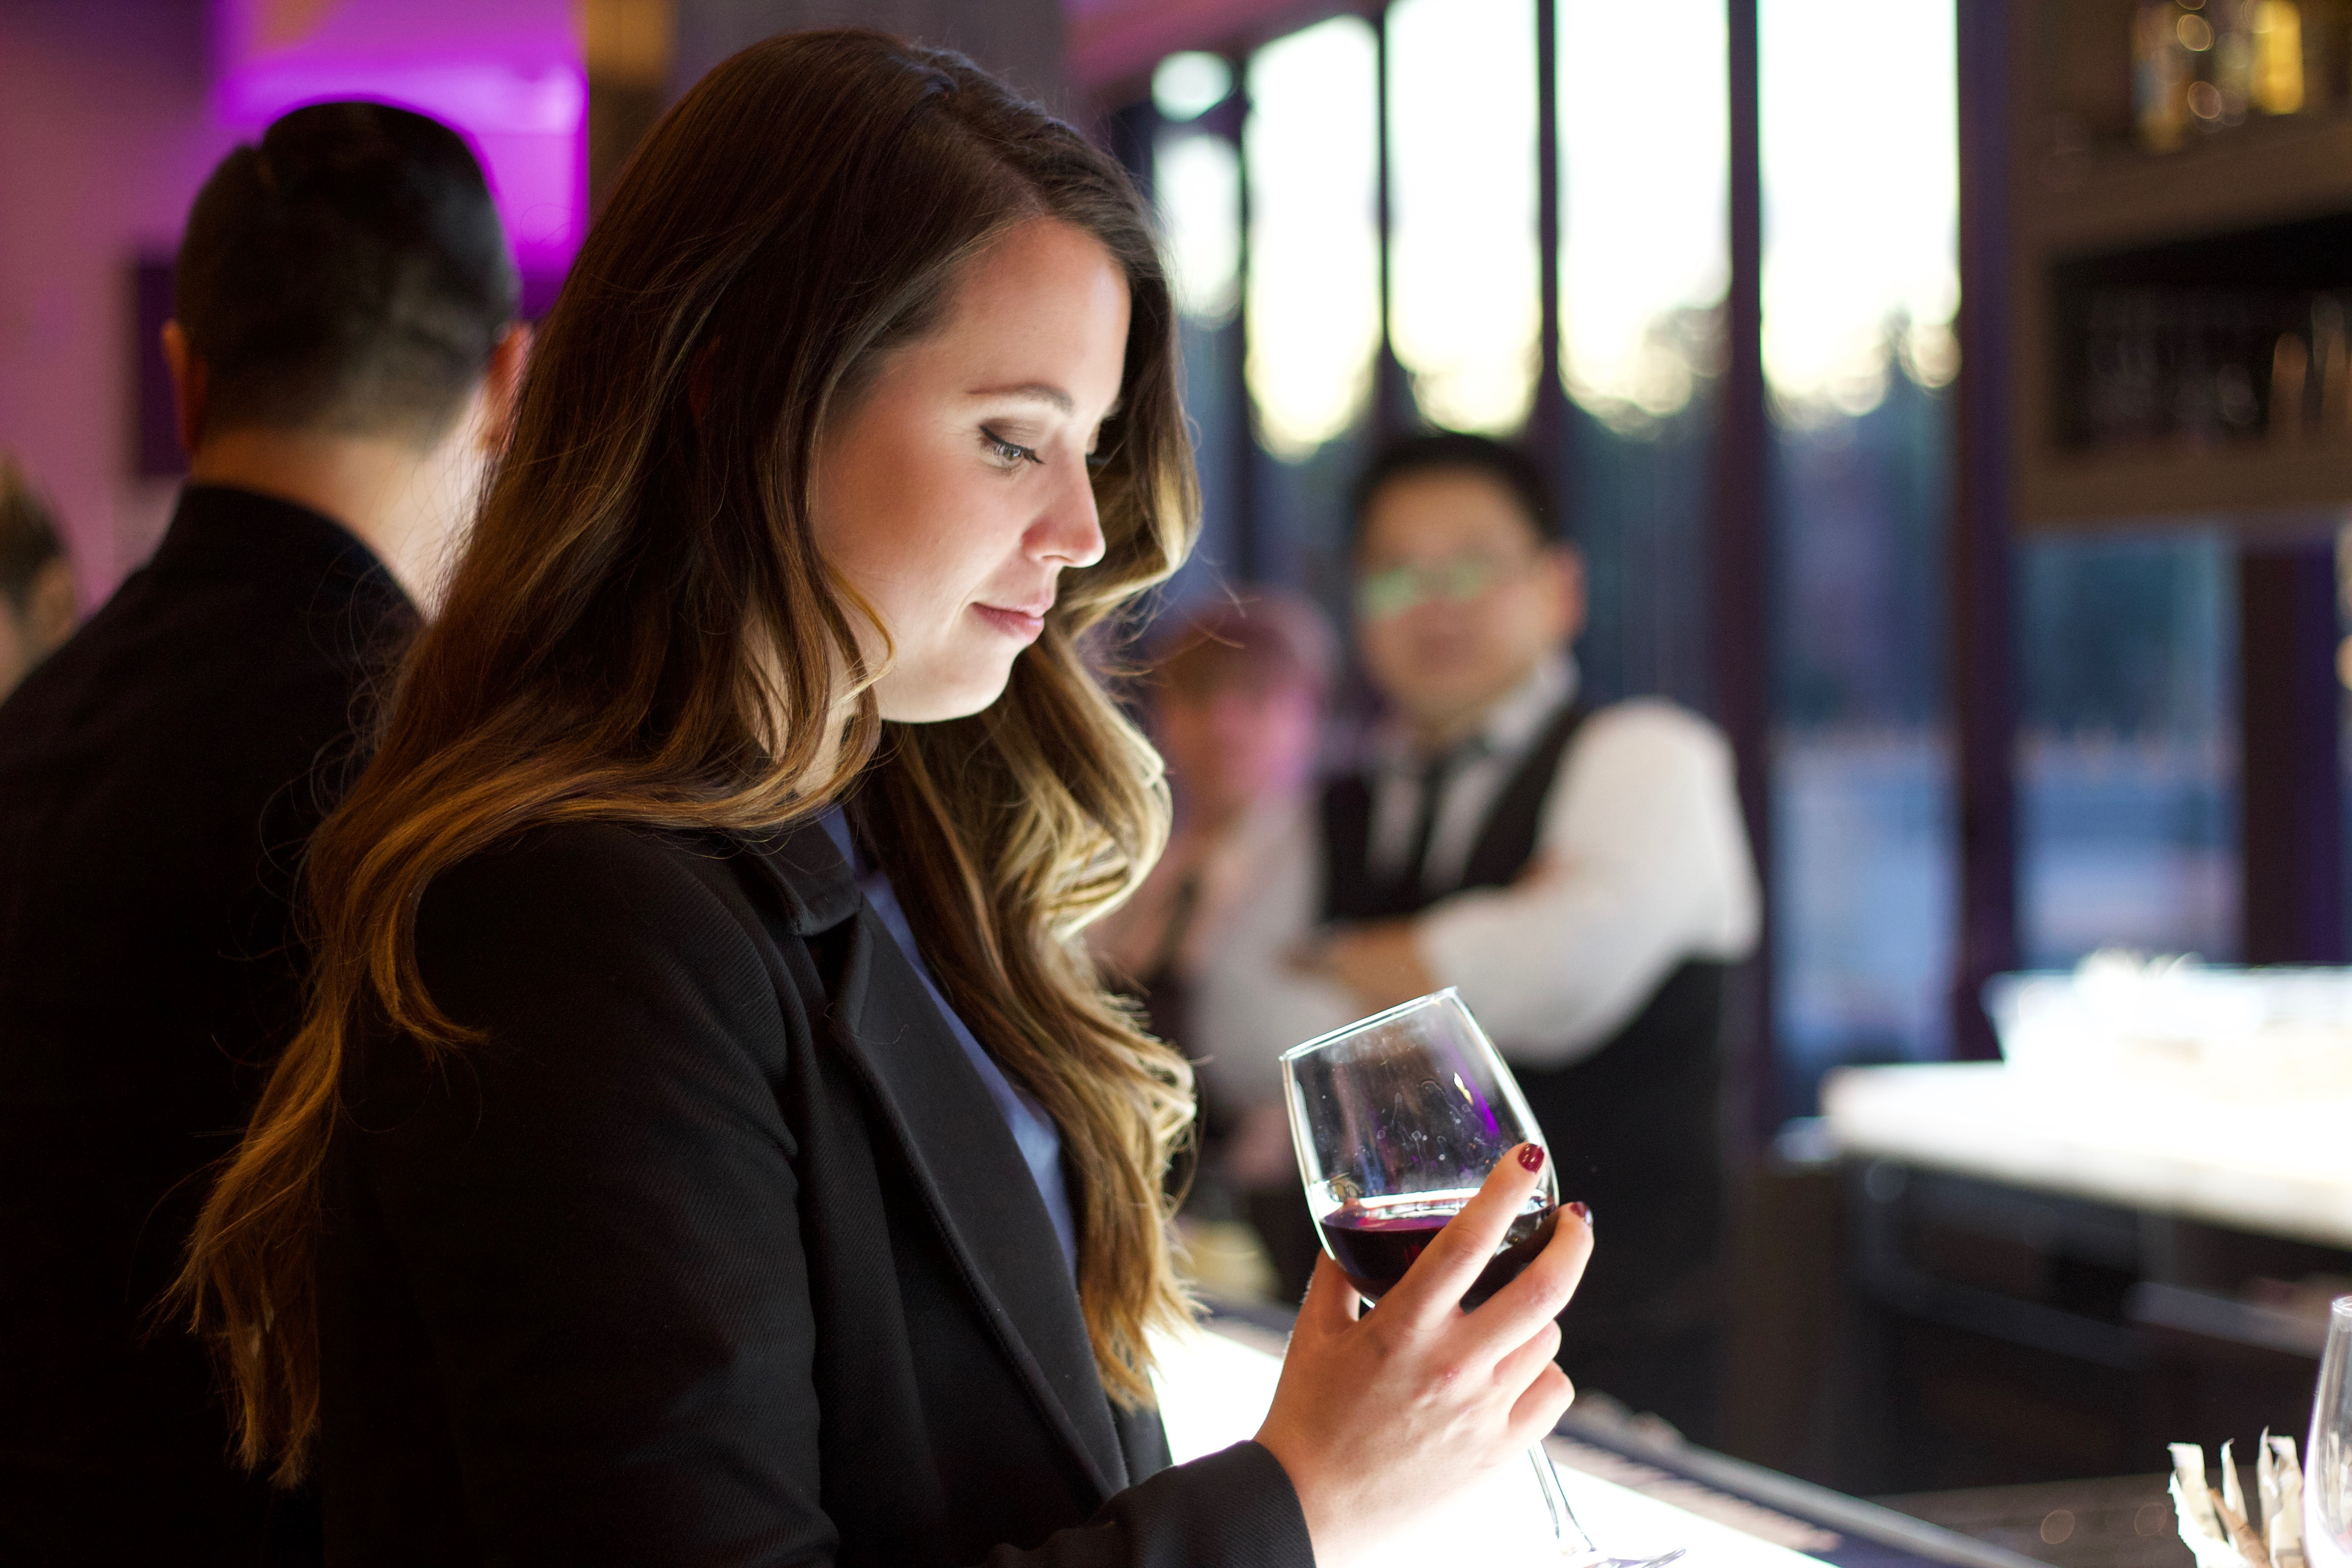 Nikki enjoying a glass of red wine at the Chateau Le Parc Vineyard food blogger event.